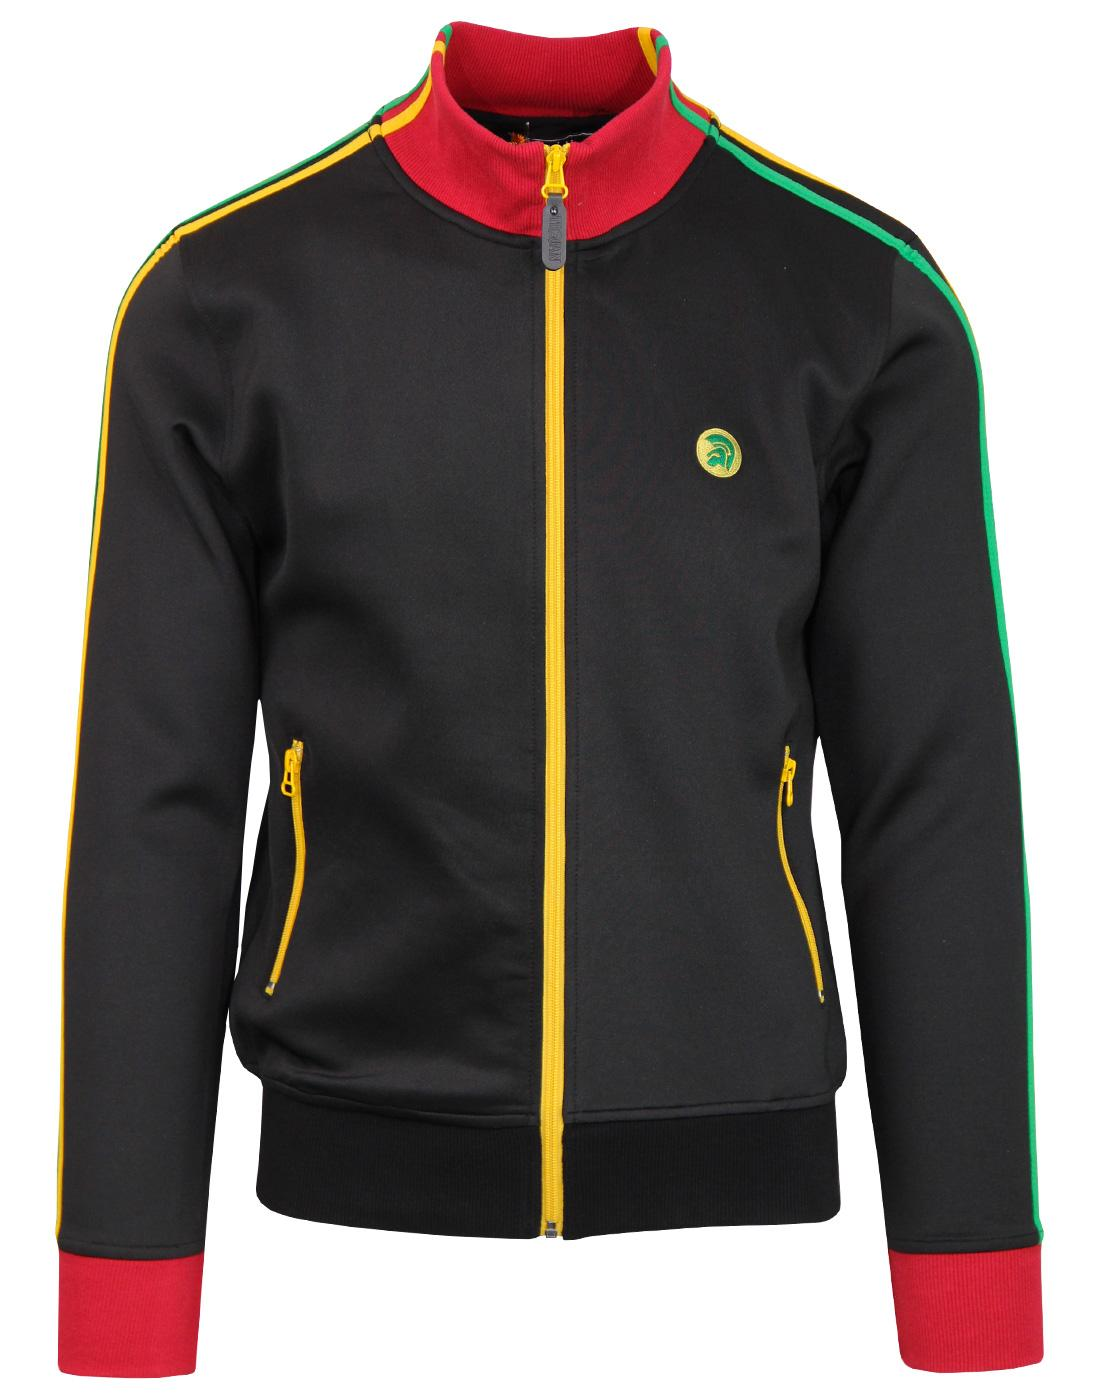 TROJAN RECORDS Mod Ska Rasta Stripe Track Jacket